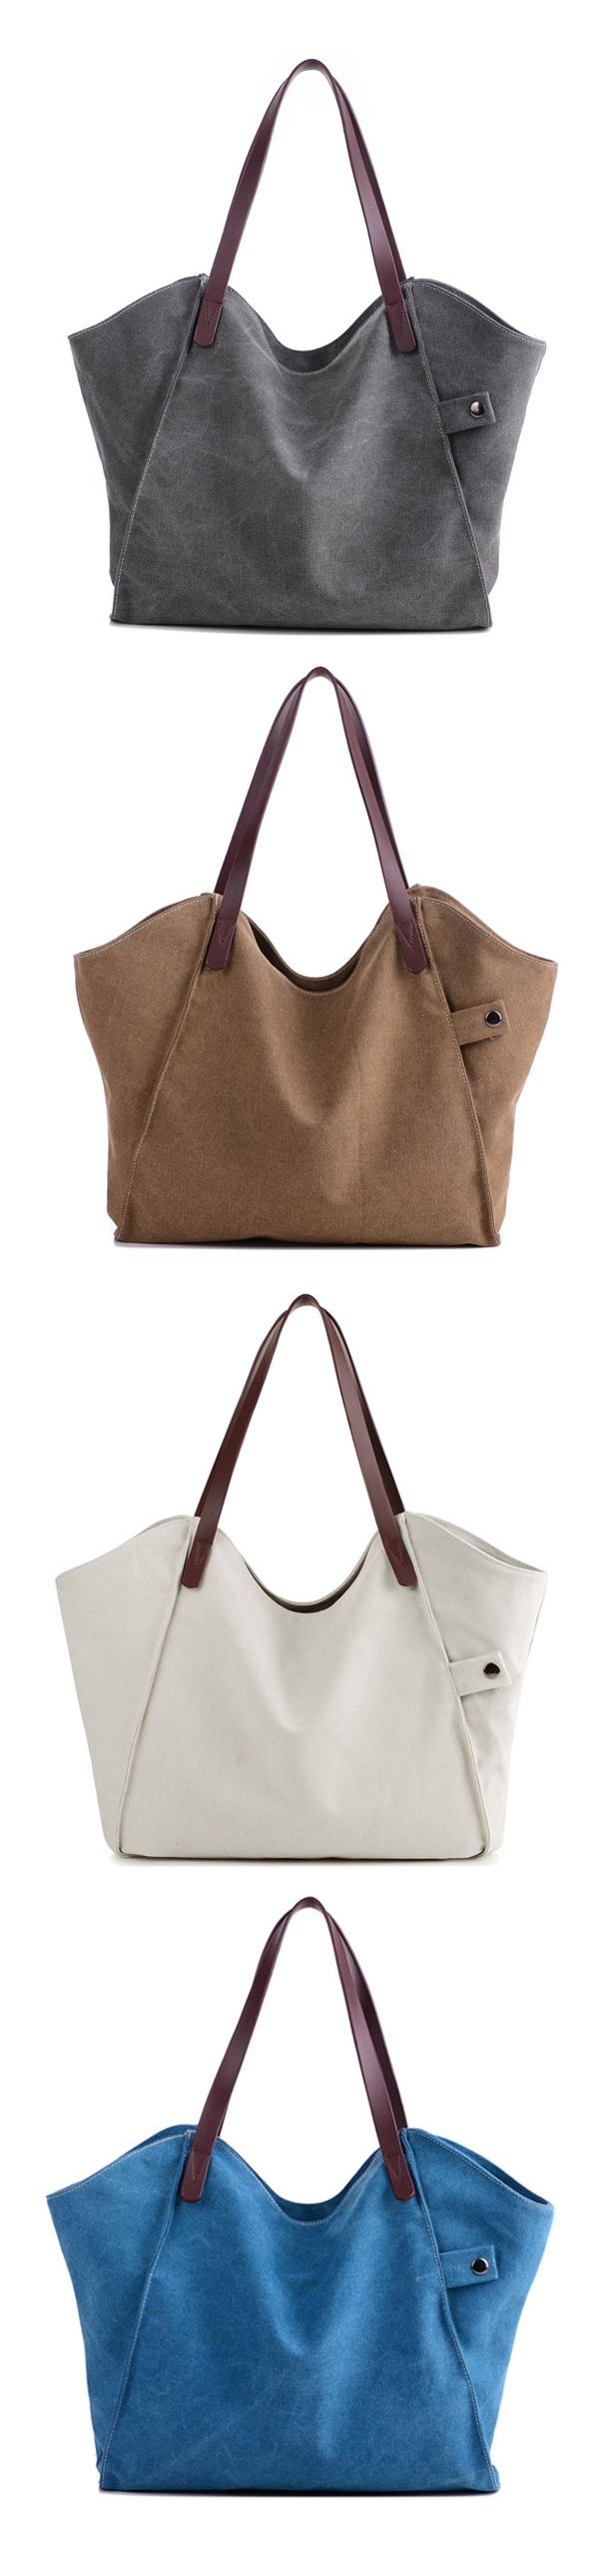 US$18.89 Casual Durable Thicker Canvas Handbag Light Casual Large Capacity Shoulder Bag For Women